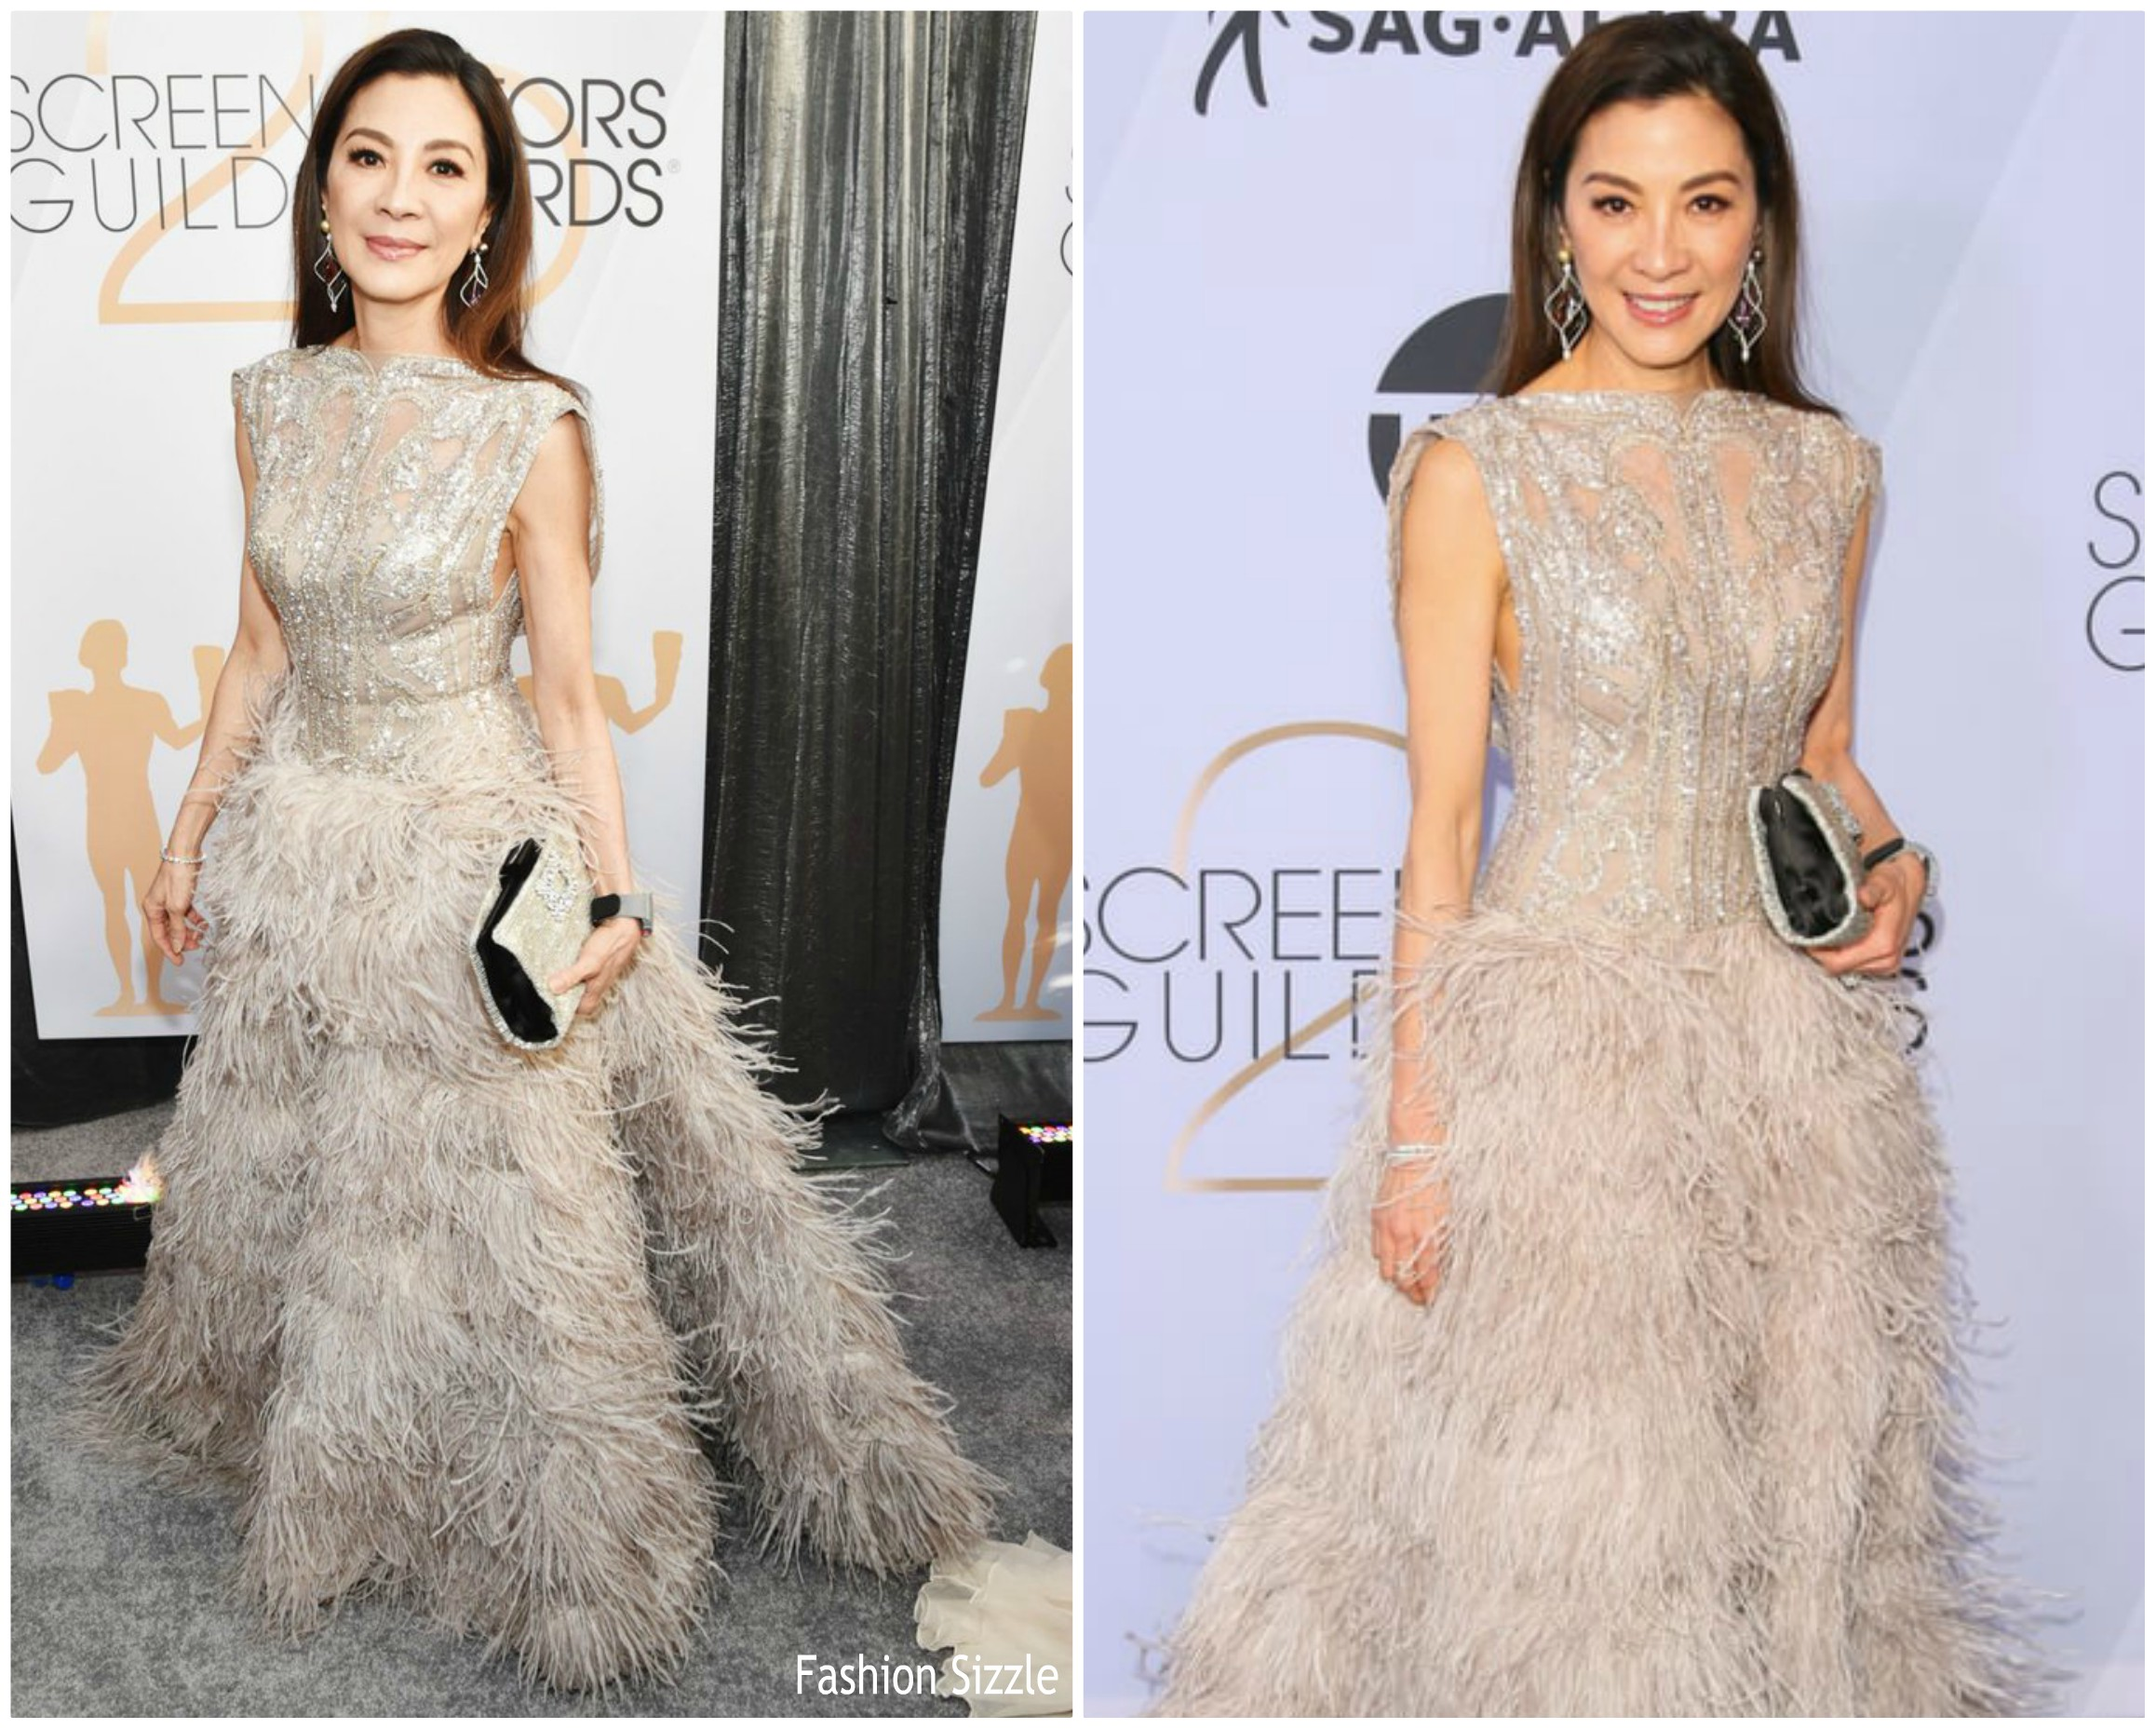 michelle-yeoh-in-elie-saab-haute-couture-2019-sag-awards